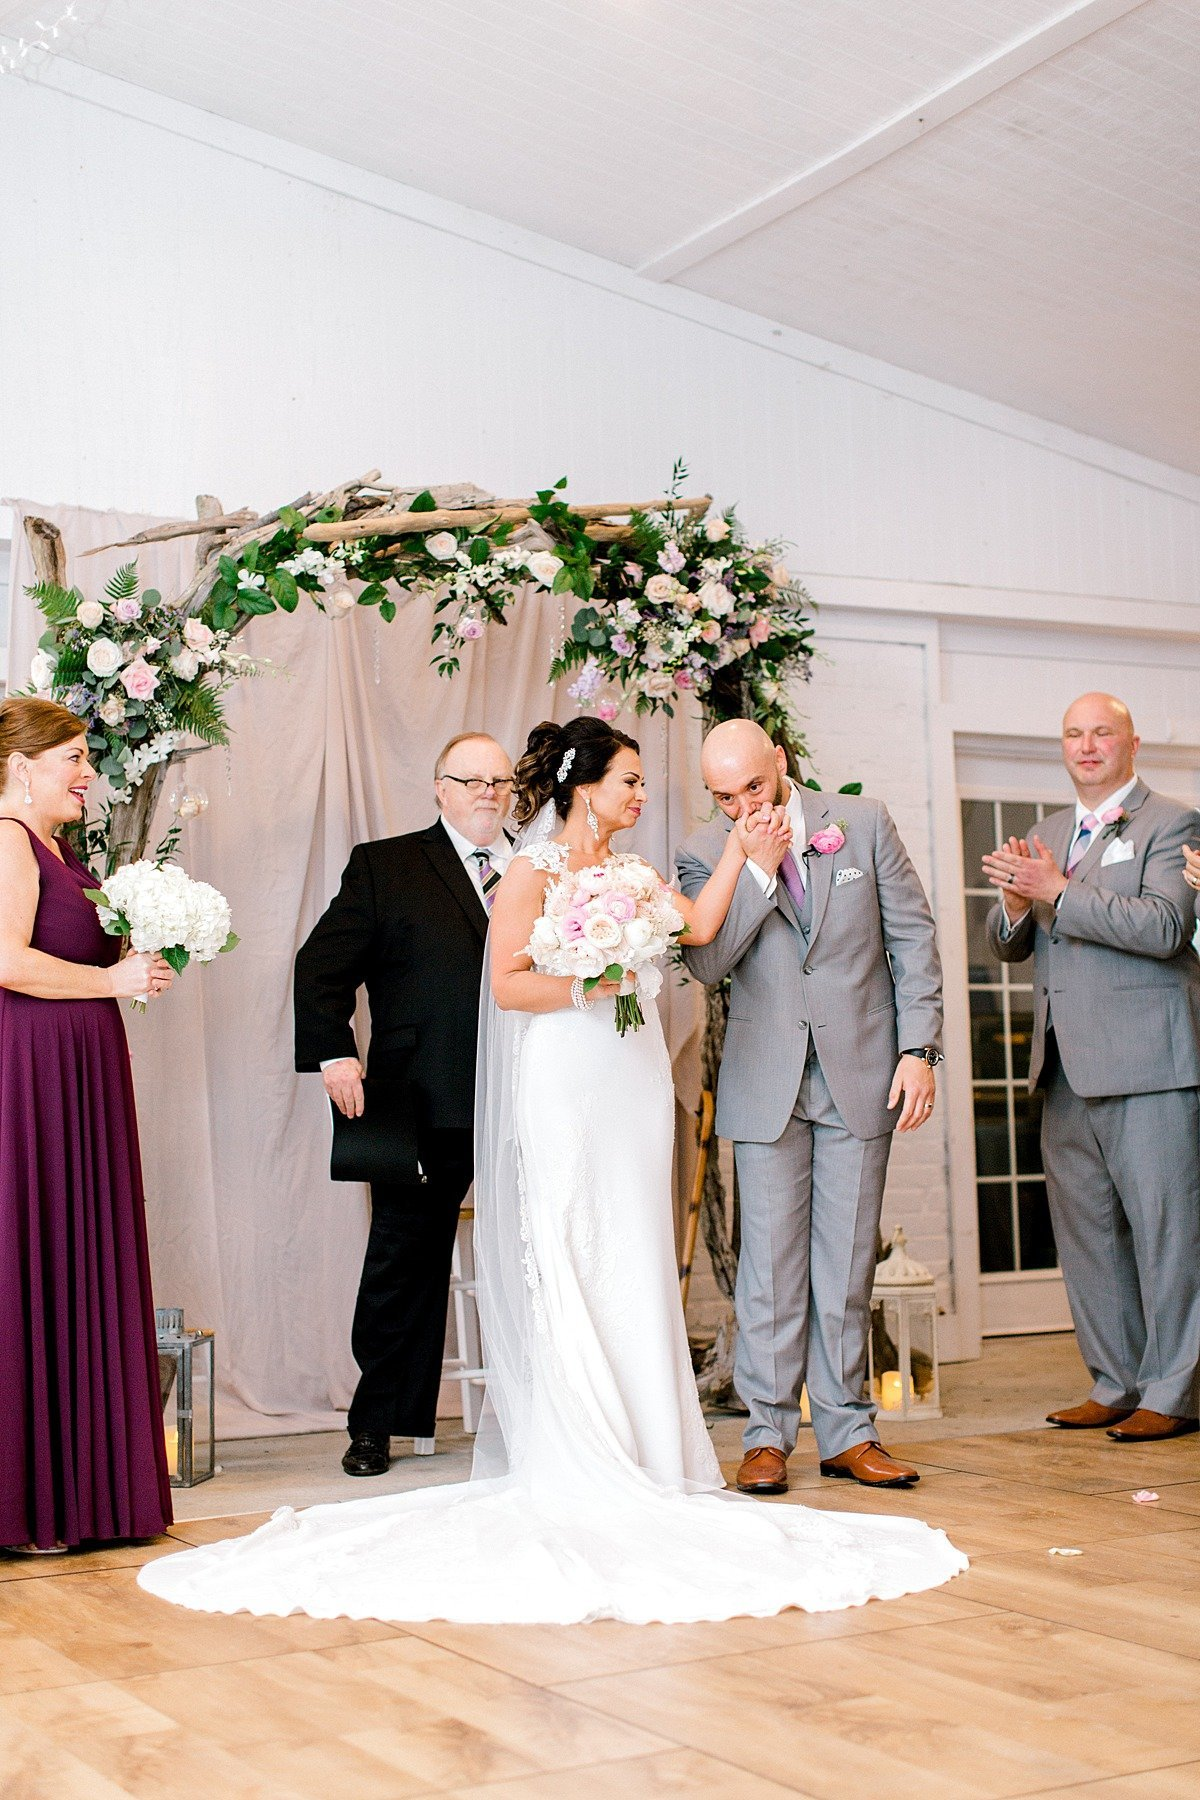 Elegant Spring Pink Abilena Plantation Indoor Rainy Wedding New Bern NC Andrew & Tianna Photography-64